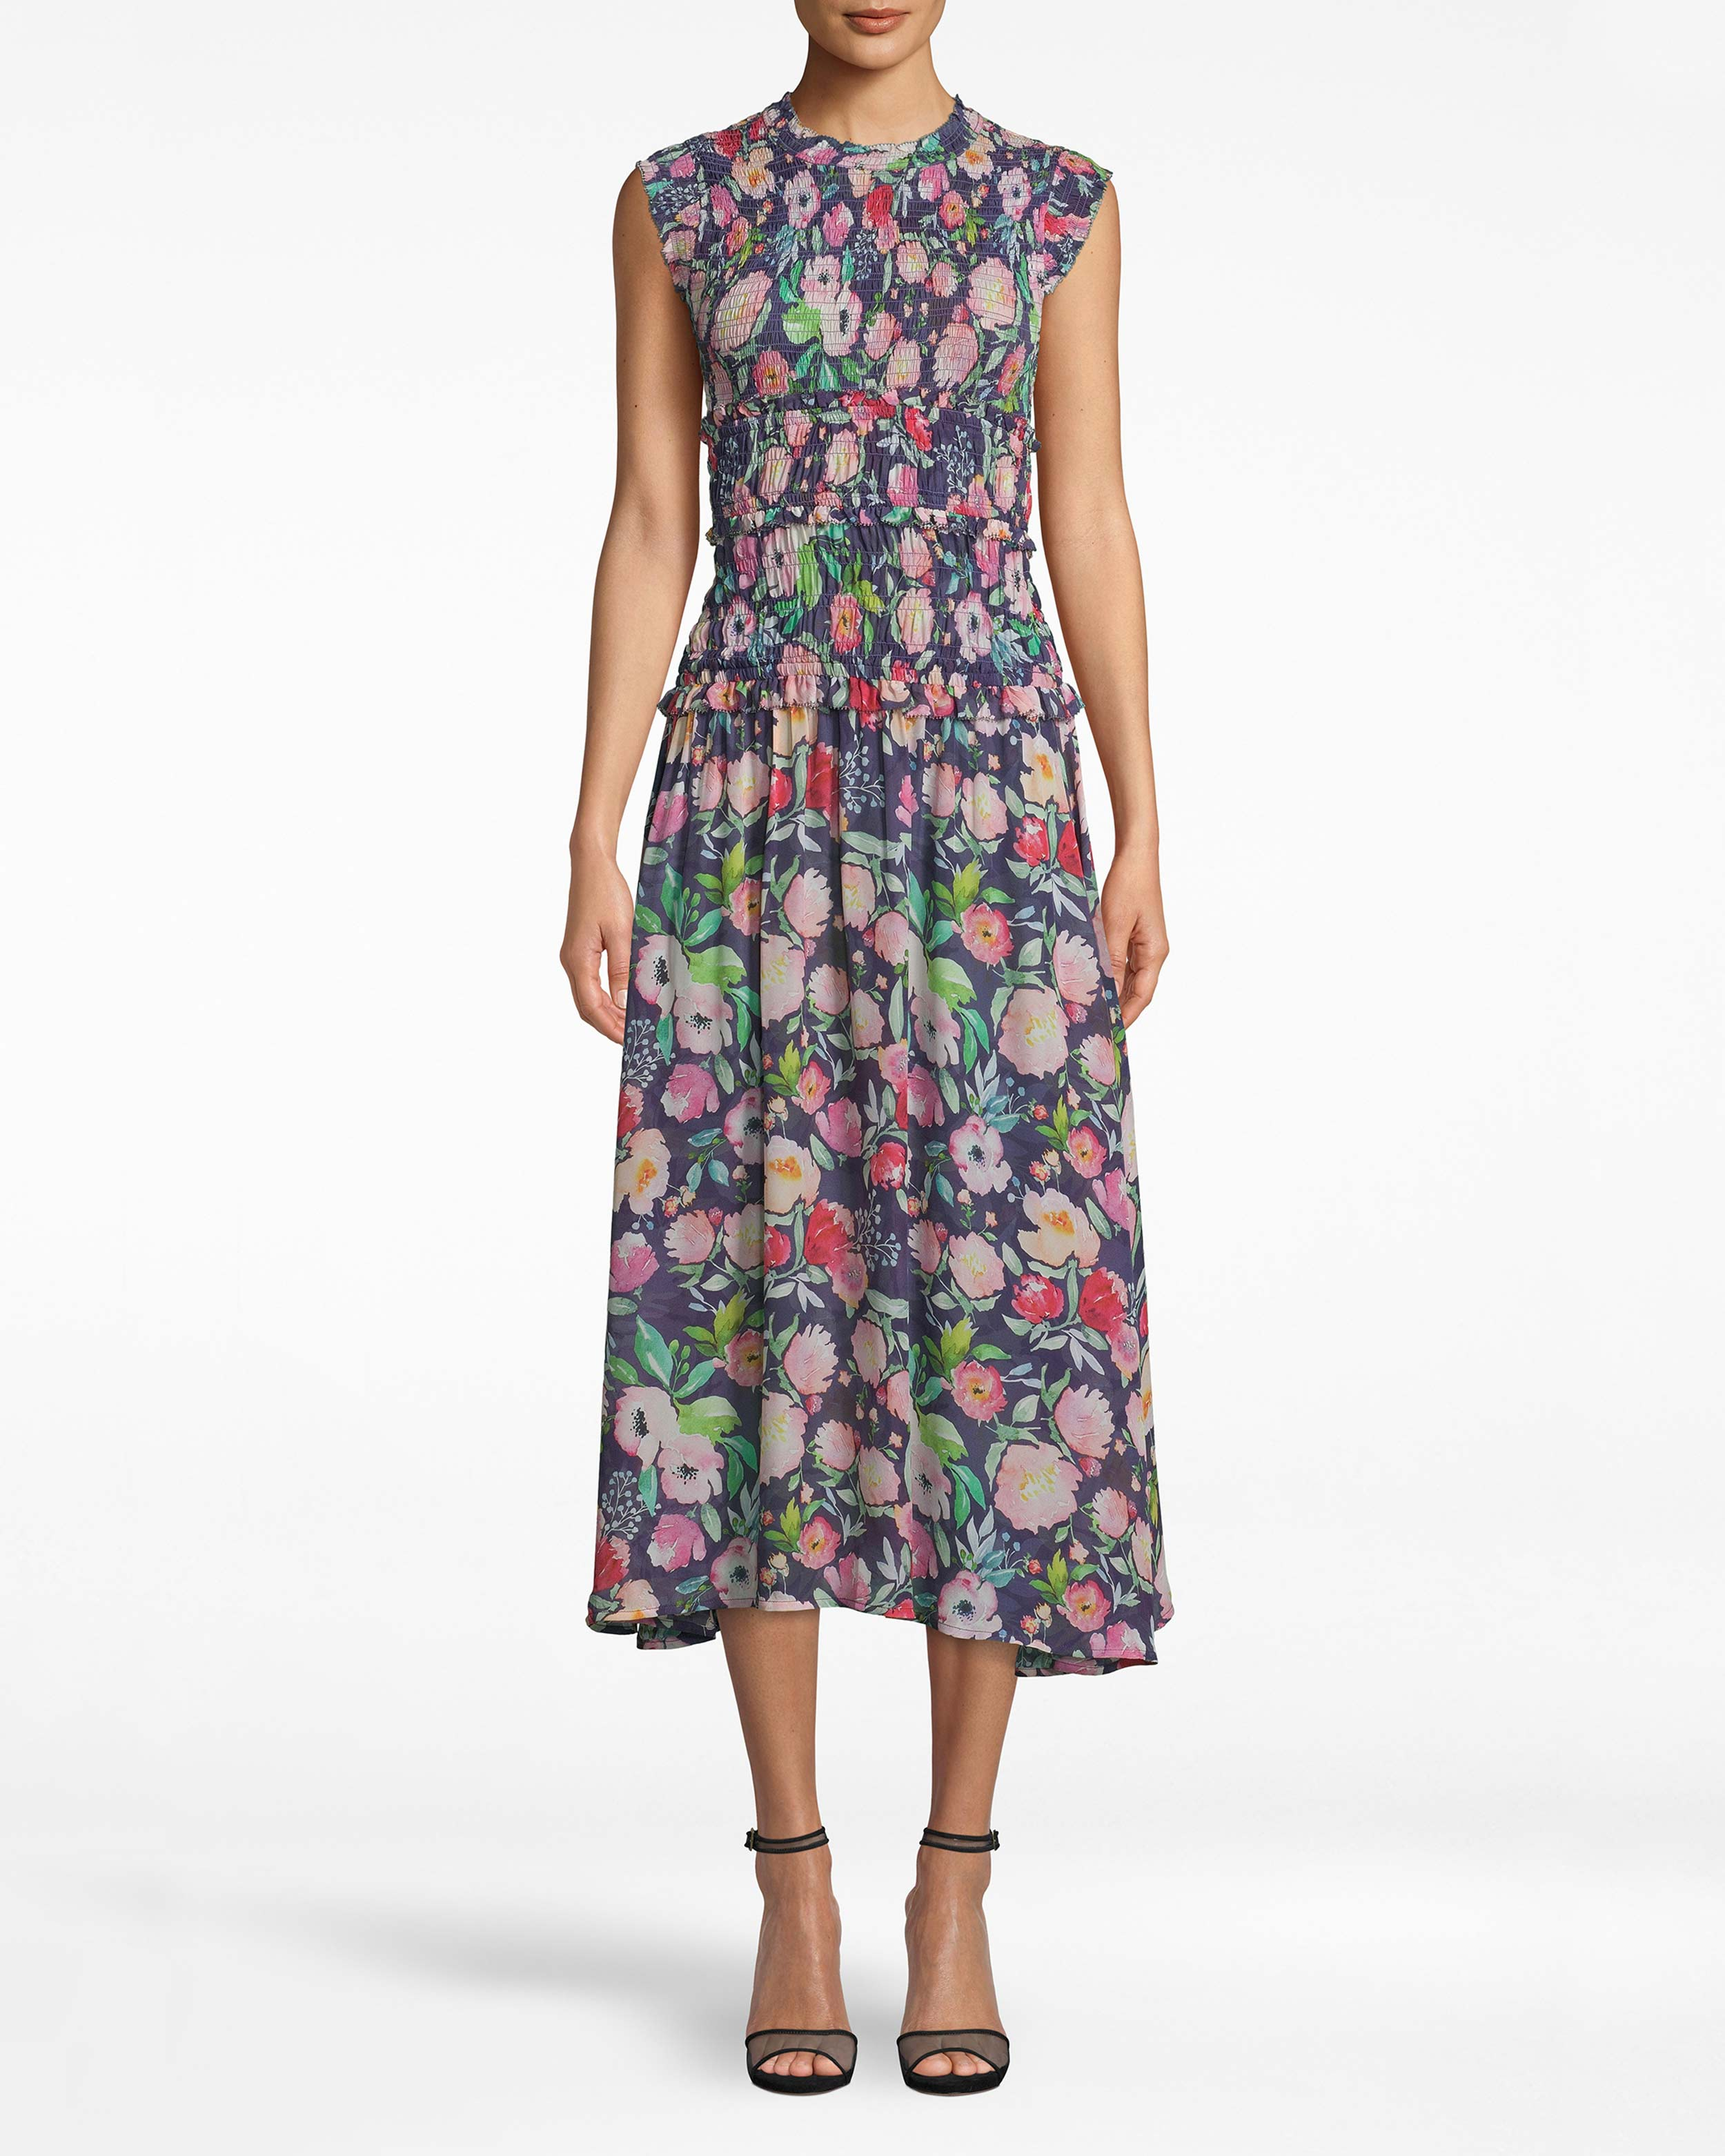 nicole miller watercolor floral smocked midi dress | polyester/spandex/viscose | size petite